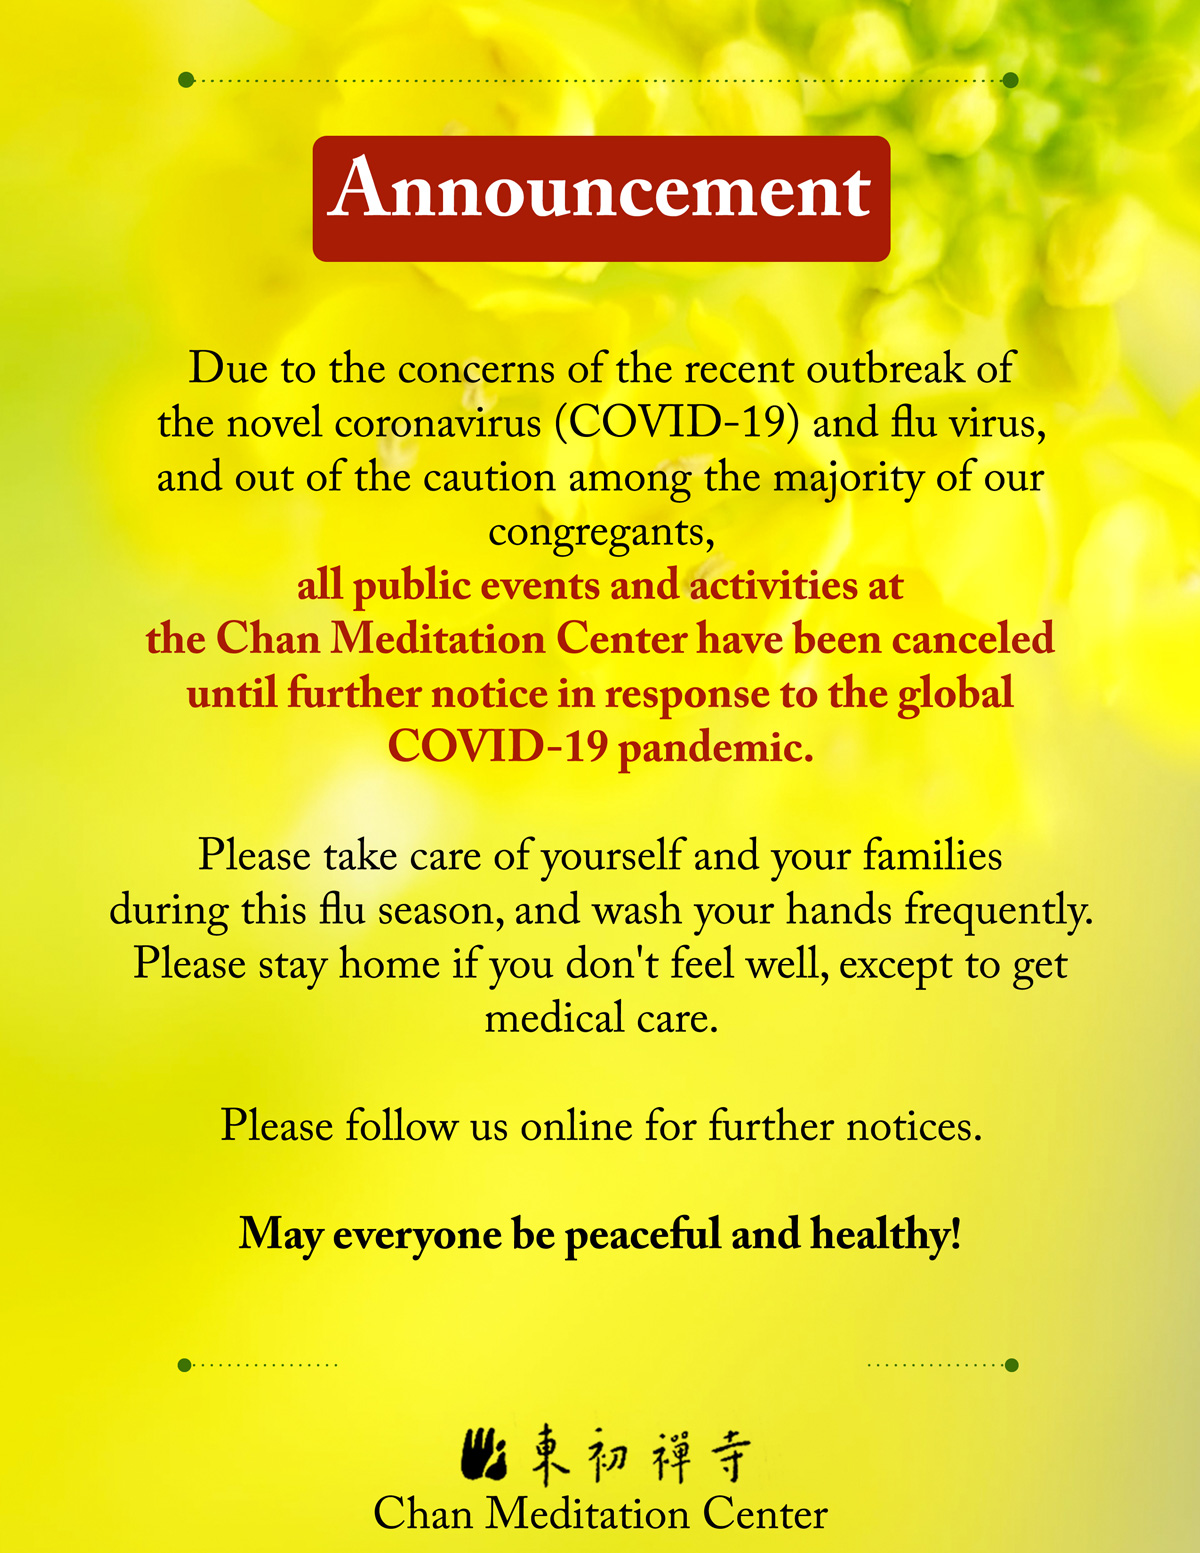 Activity Cancellation Announcement - 2020 Coronavirus